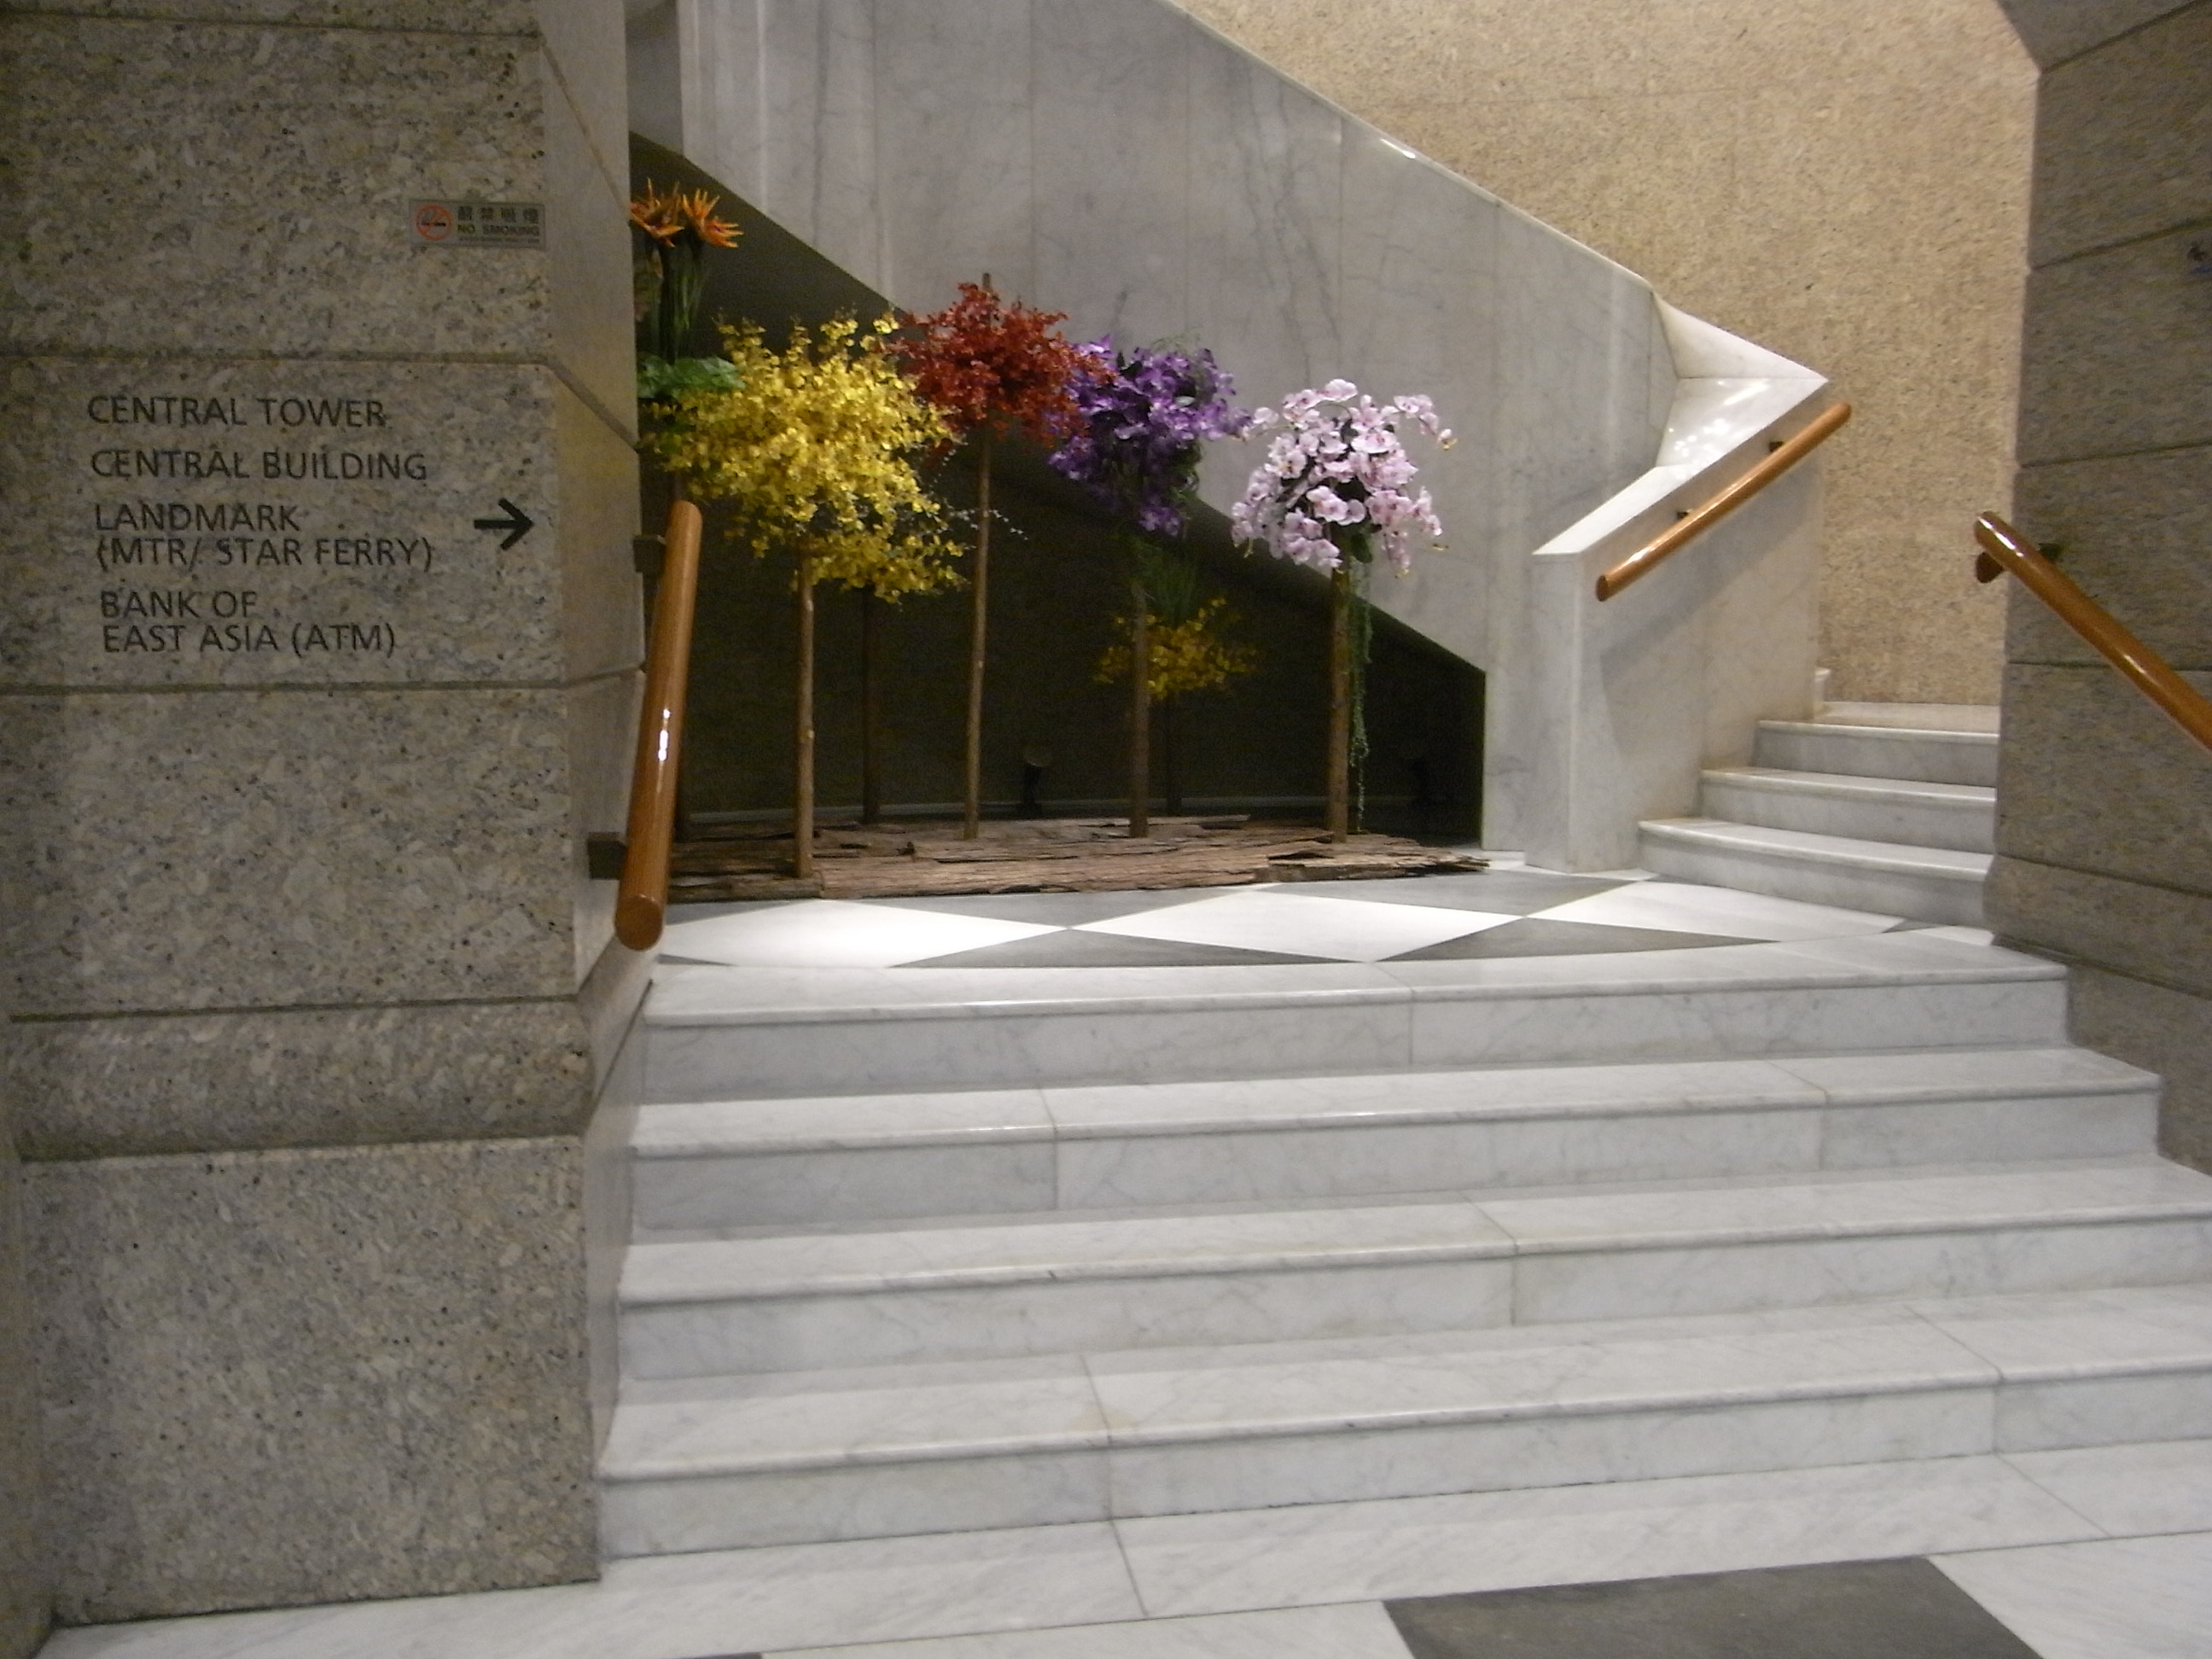 File:HK Central Night 娛樂行 Entertainment Building Interior 03 White Marble  Stairs Artificial Flowers